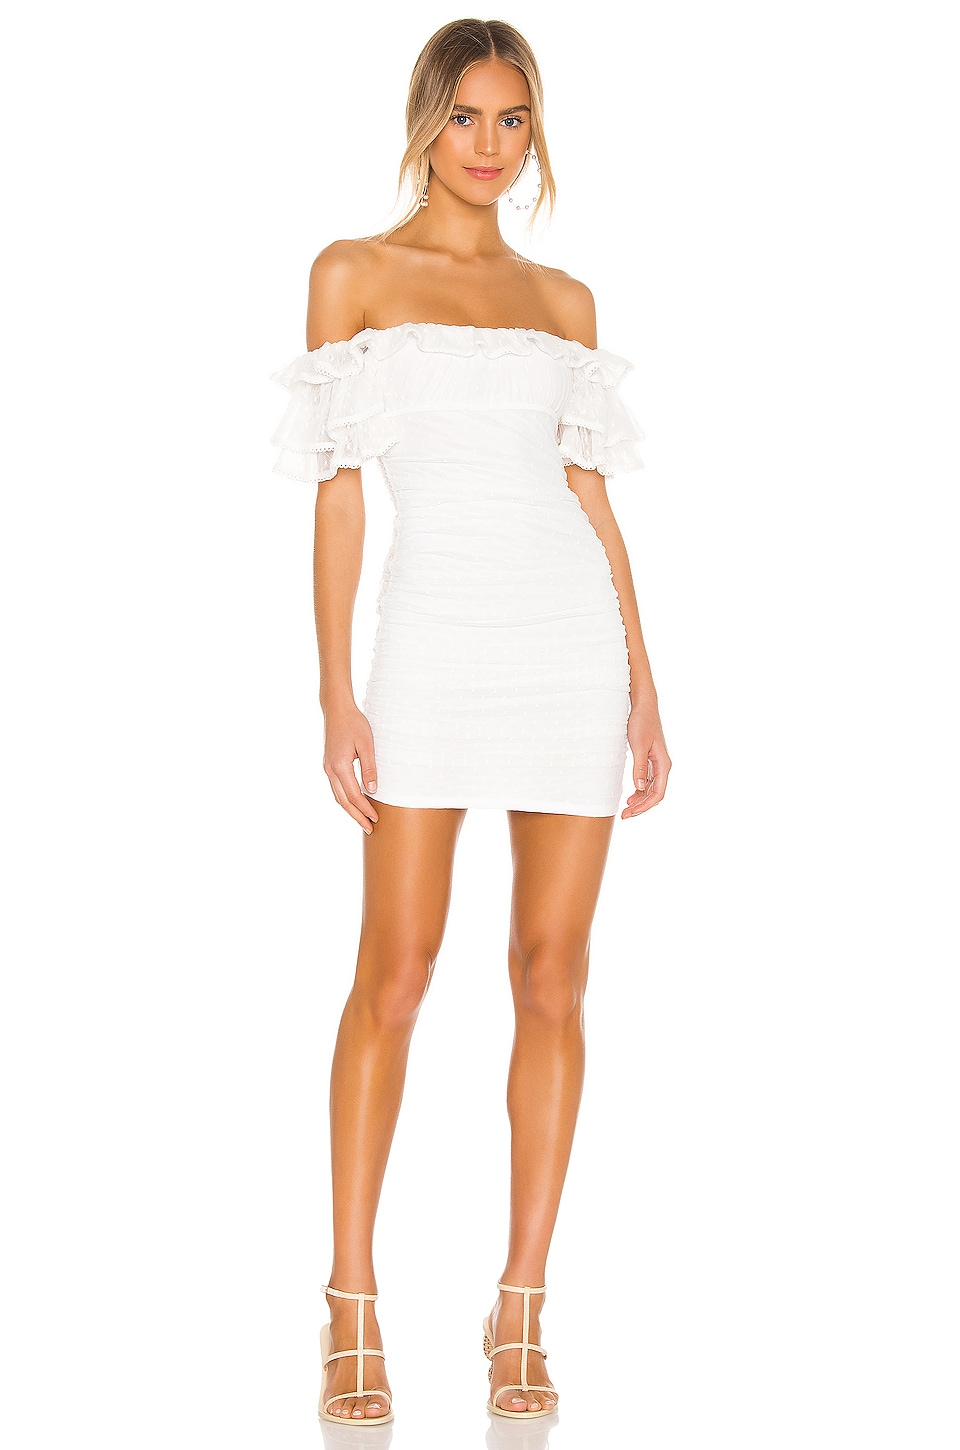 Eva Mini Dress             Camila Coelho                                                                                                       CA$ 306.13 7